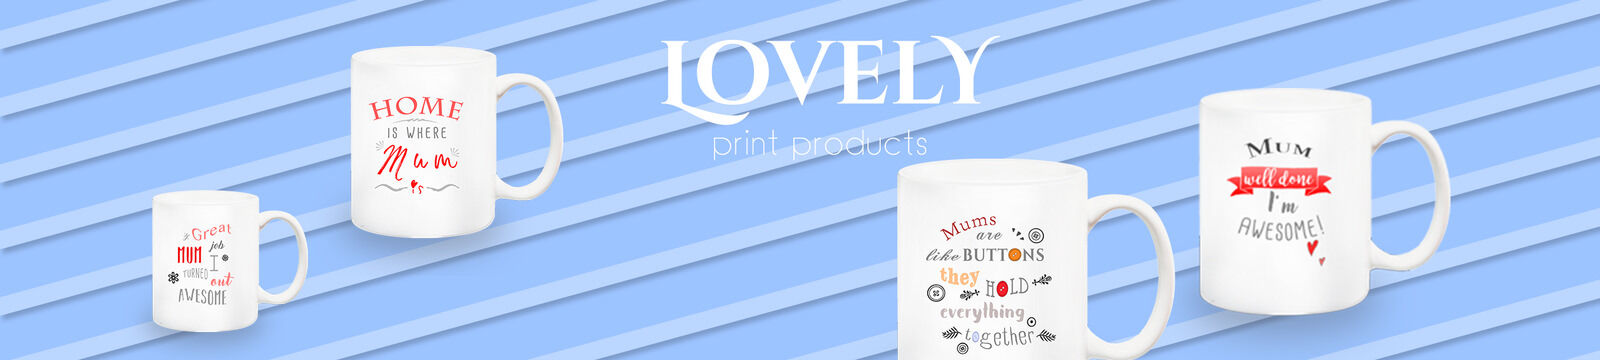 Lovely Print Products